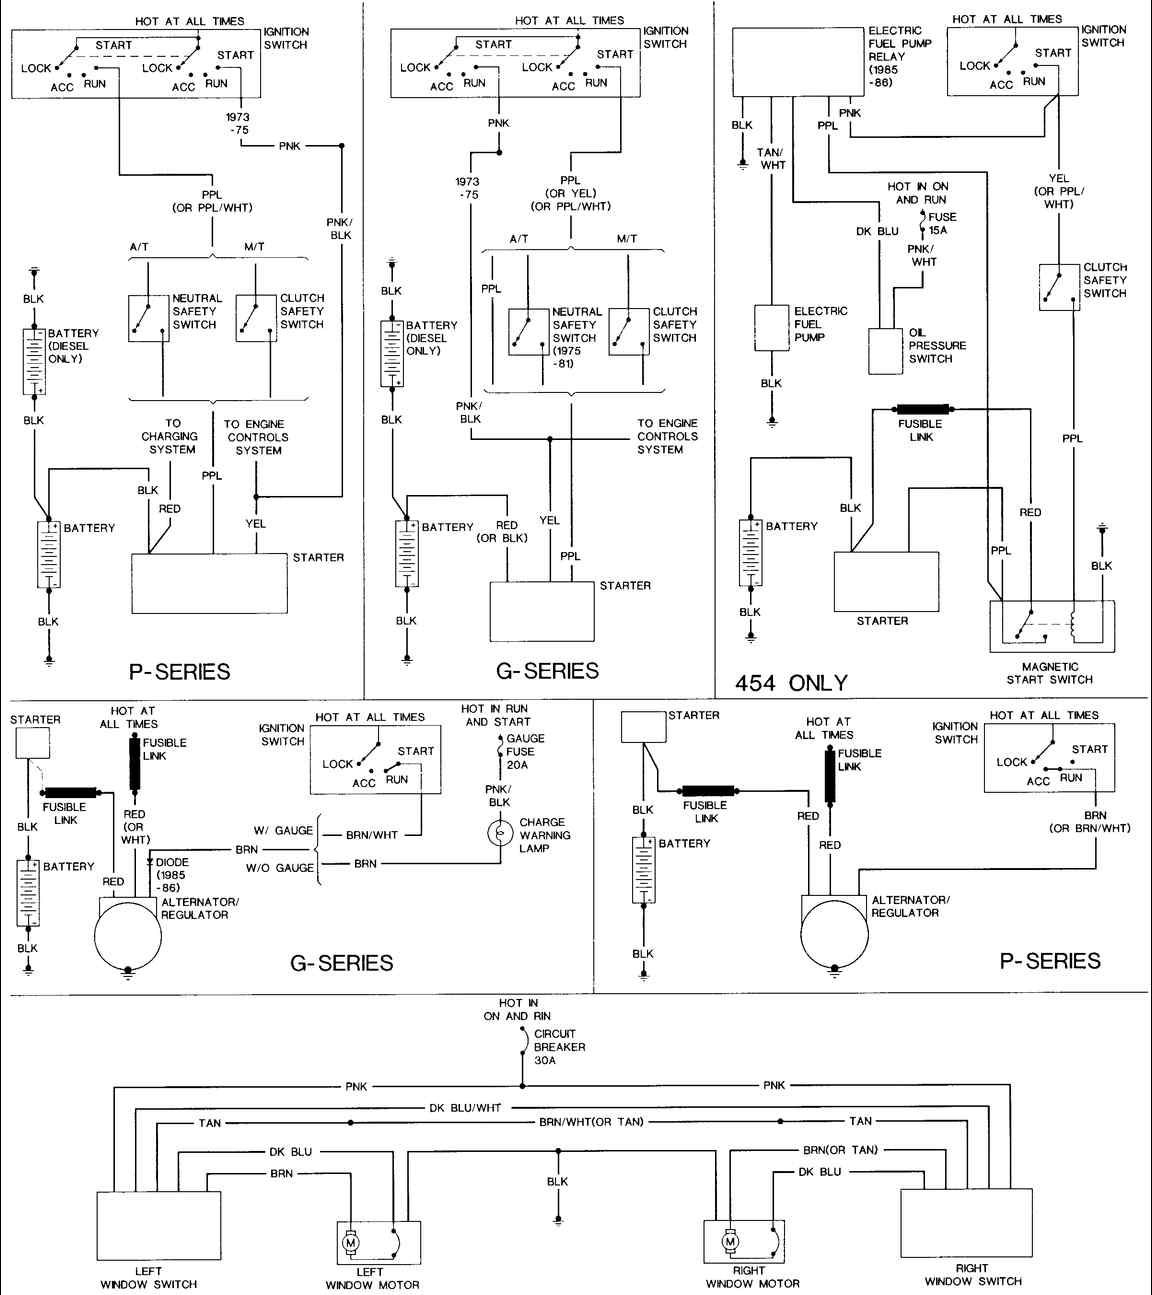 hight resolution of chevy g20 wiring diagram wiring diagram mega 1995 chevy g20 stereo wiring diagram chevy g20 wiring diagram